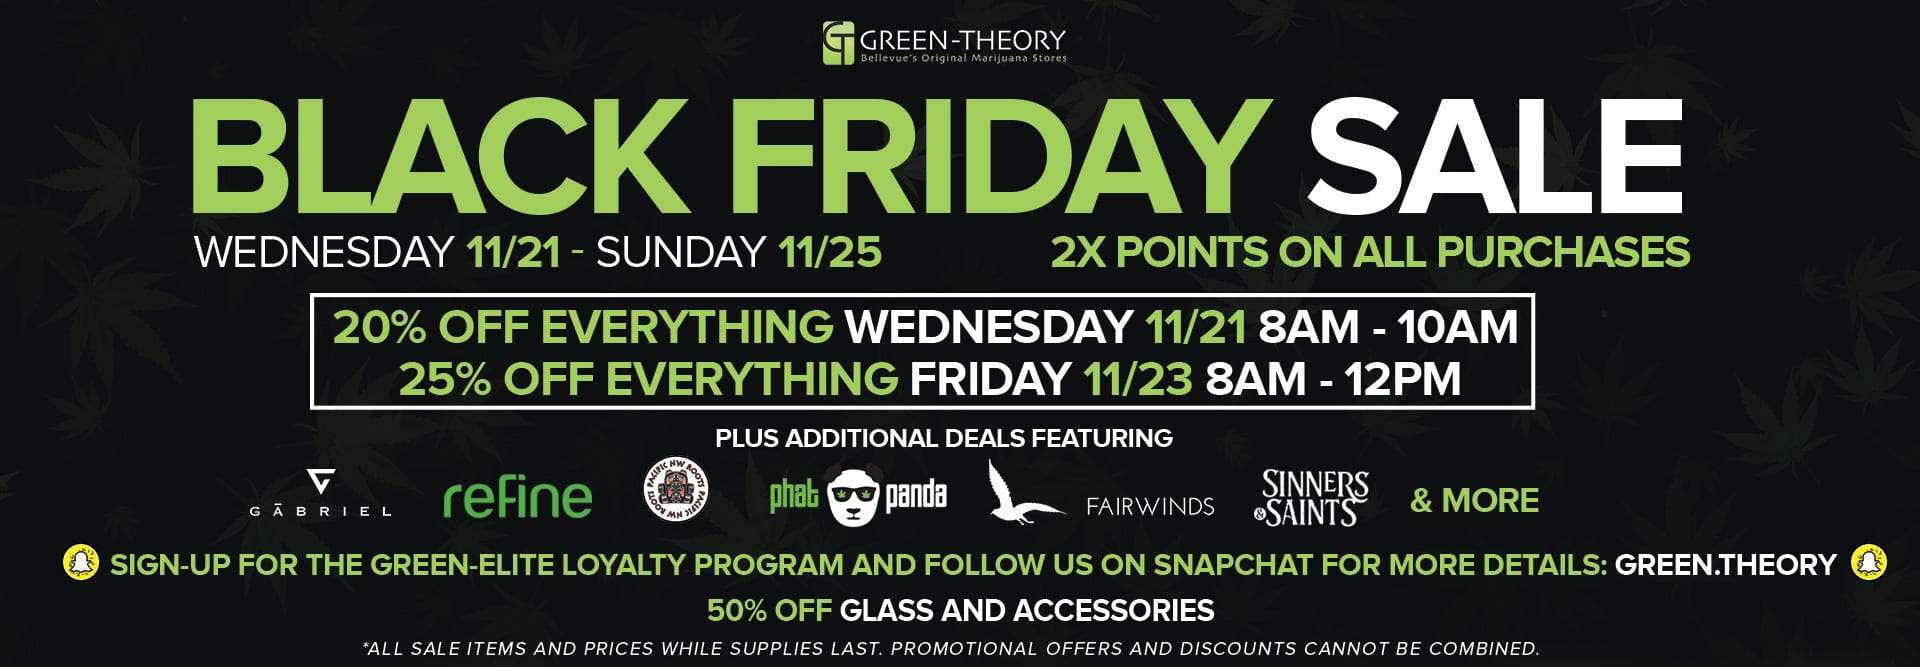 black-friday-sale-green-theory-3